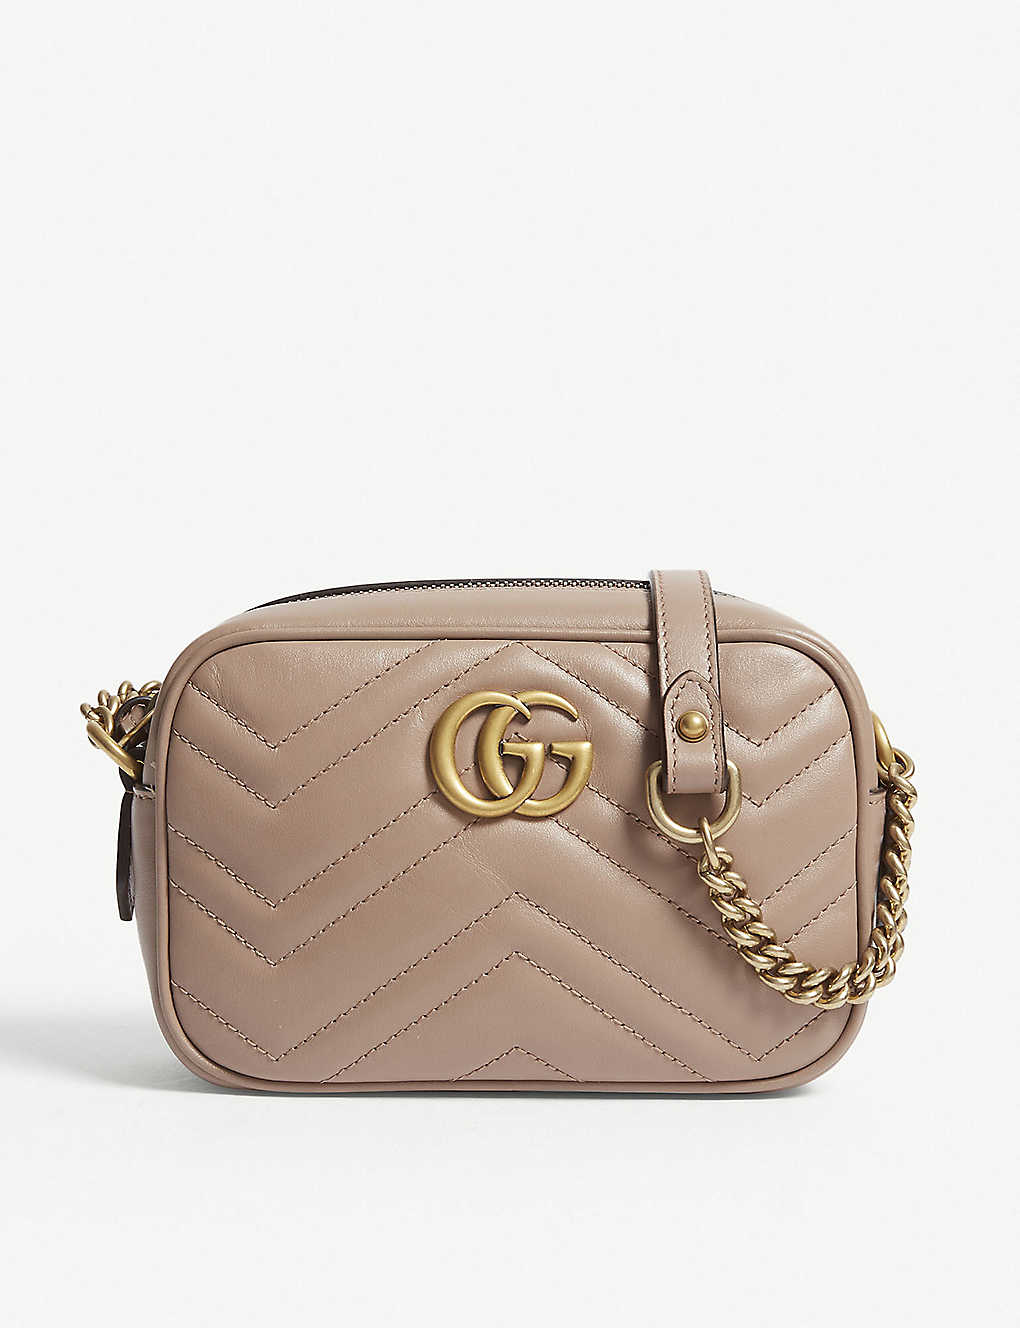 8c0fdbe1038c GUCCI - Marmont leather cross-body bag | Selfridges.com